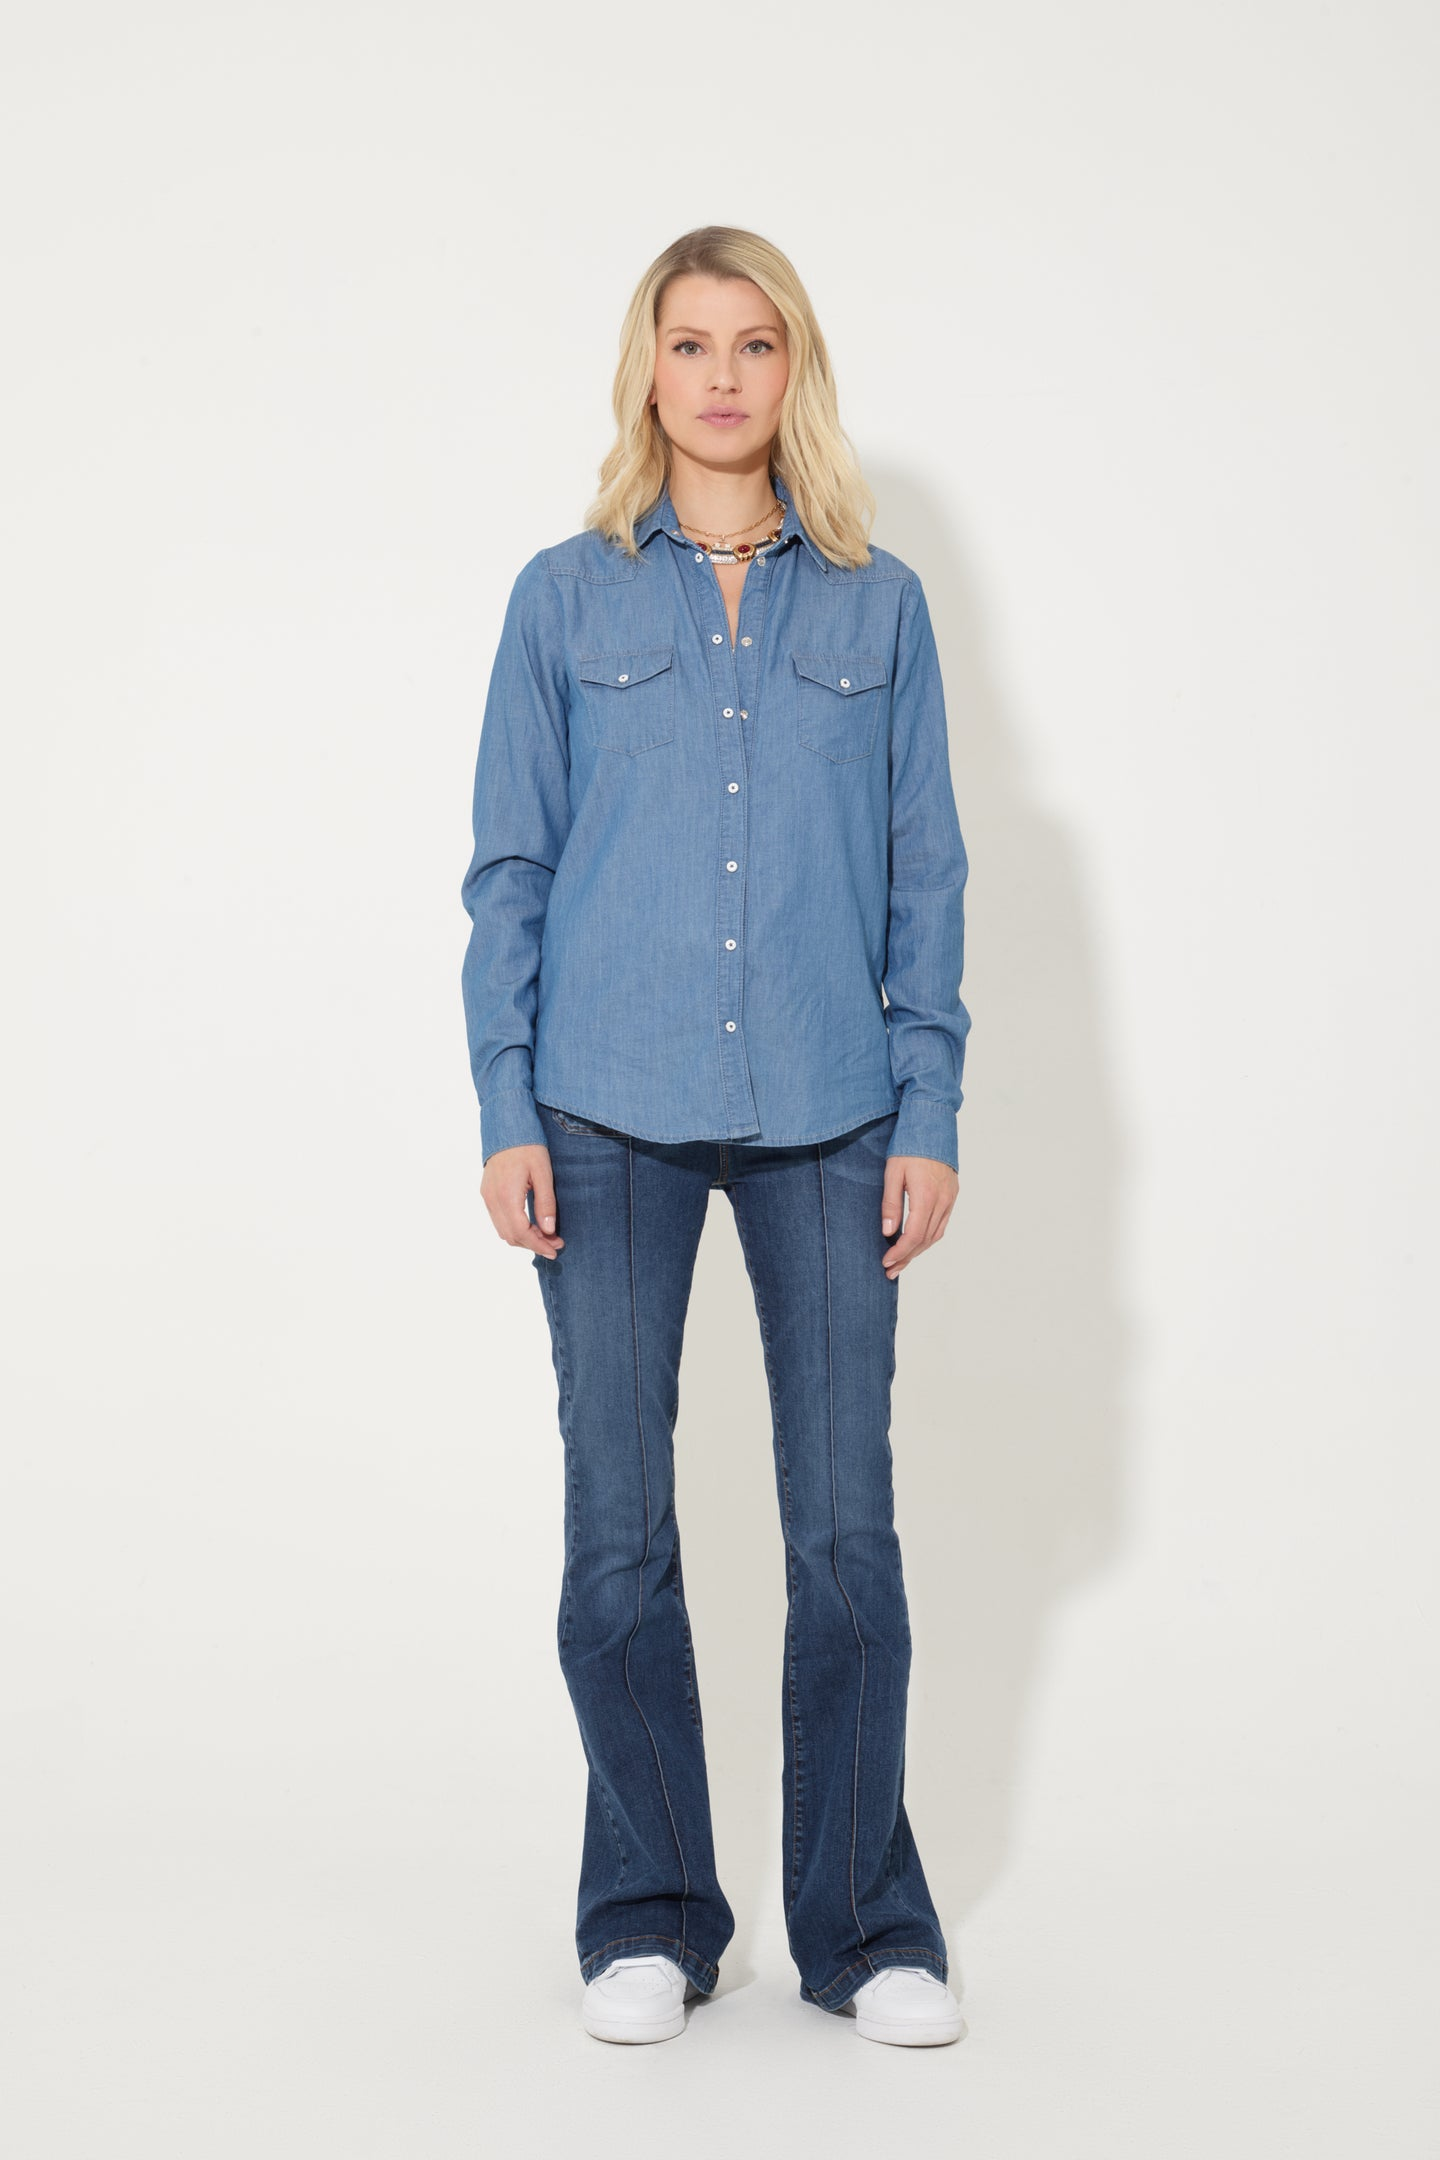 Downtown LA	The Western Shirt - Pared Back